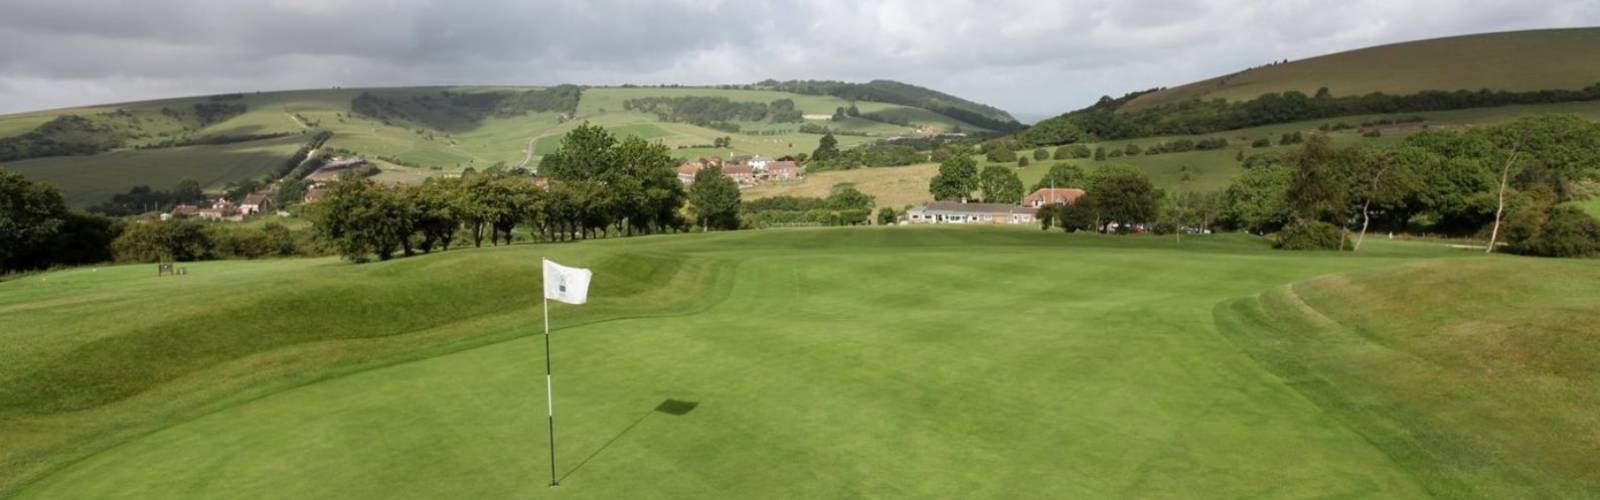 Pyecombe Golf Club - 1st Green